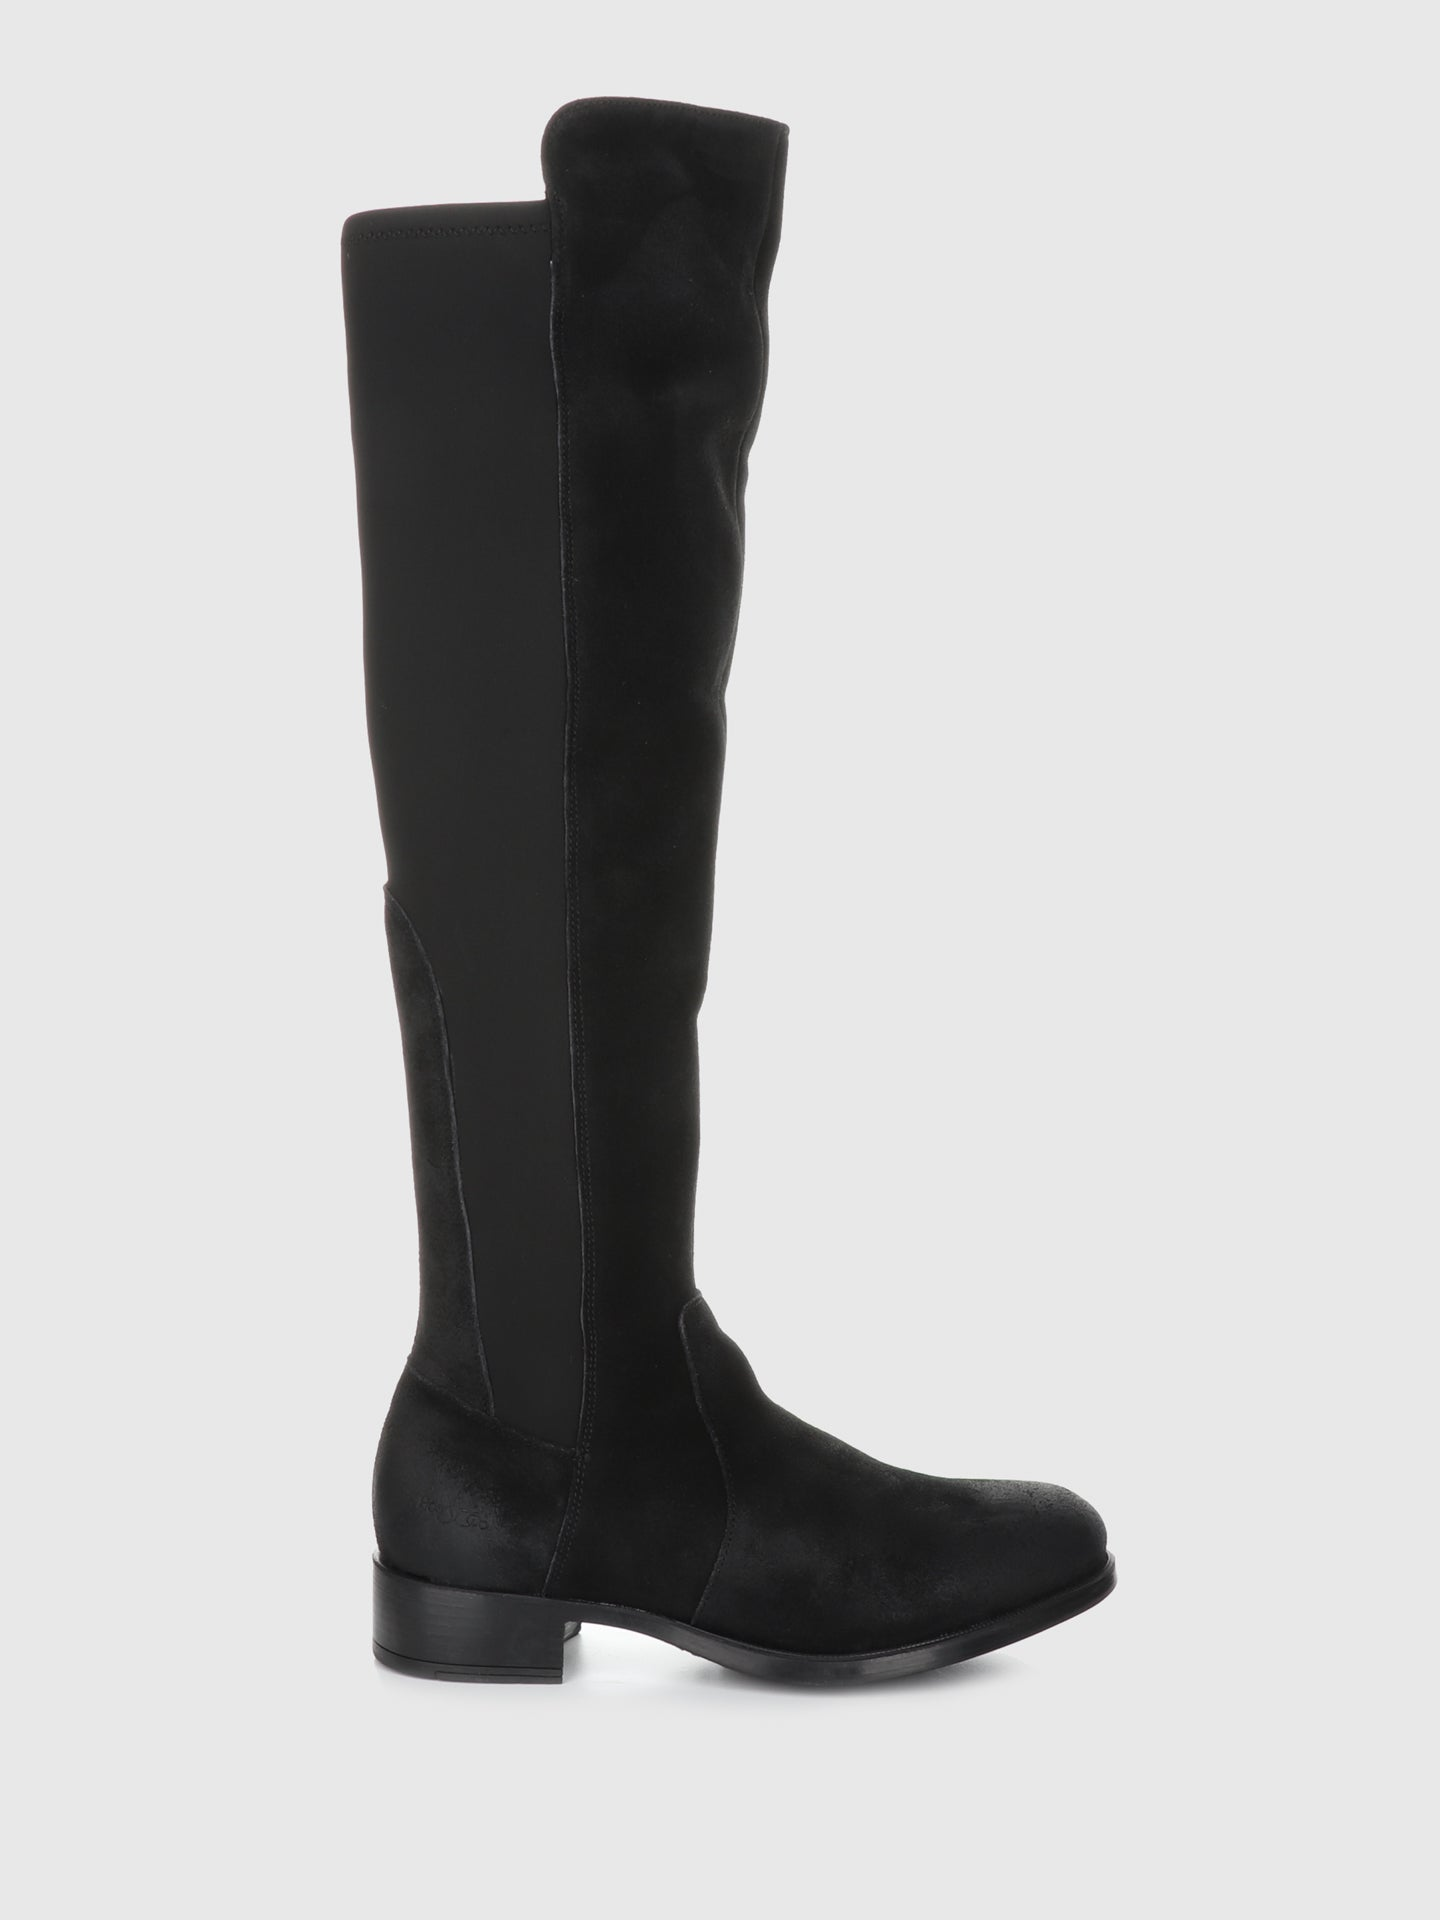 Bos&Co Black Suede Knee-High Boots